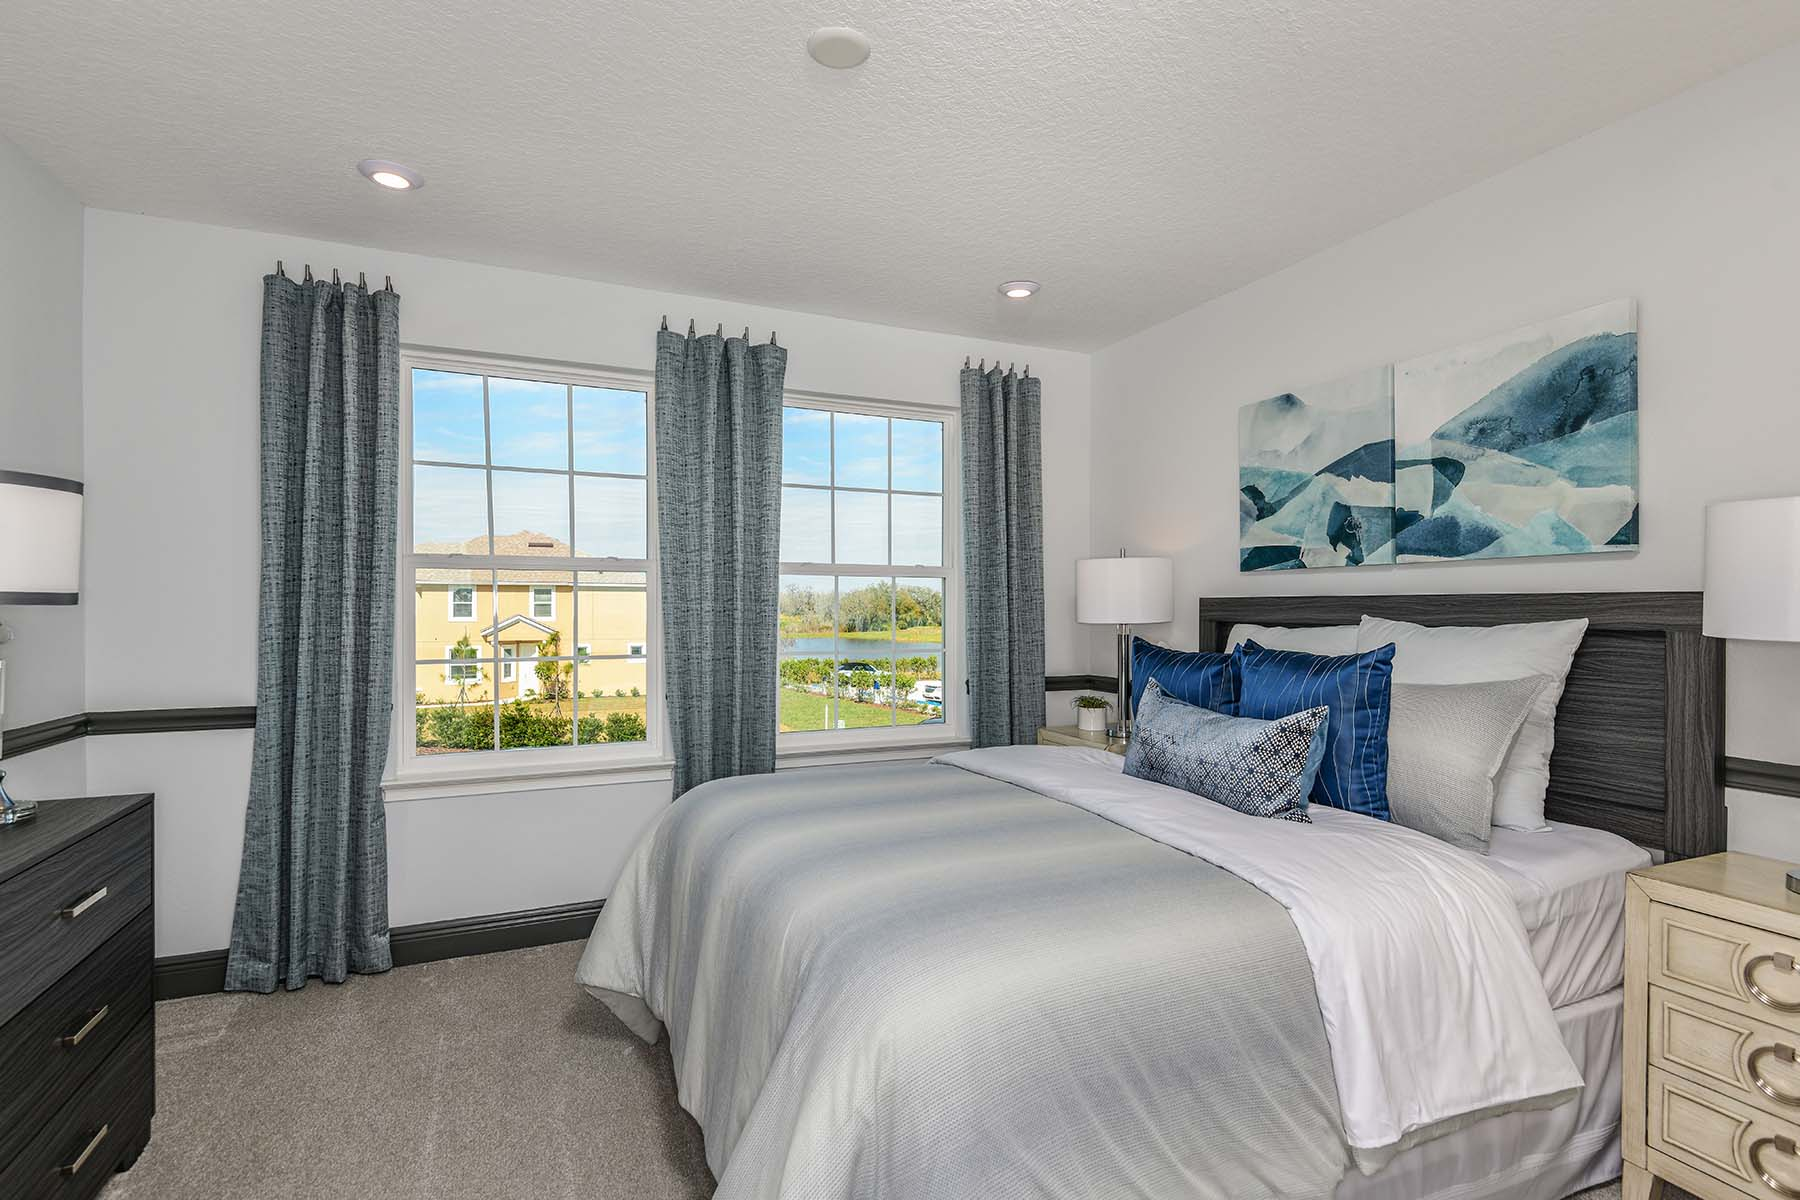 Seaside II End Plan Bedroom at Harmony at Lakewood Ranch in Lakewood Ranch Florida by Mattamy Homes